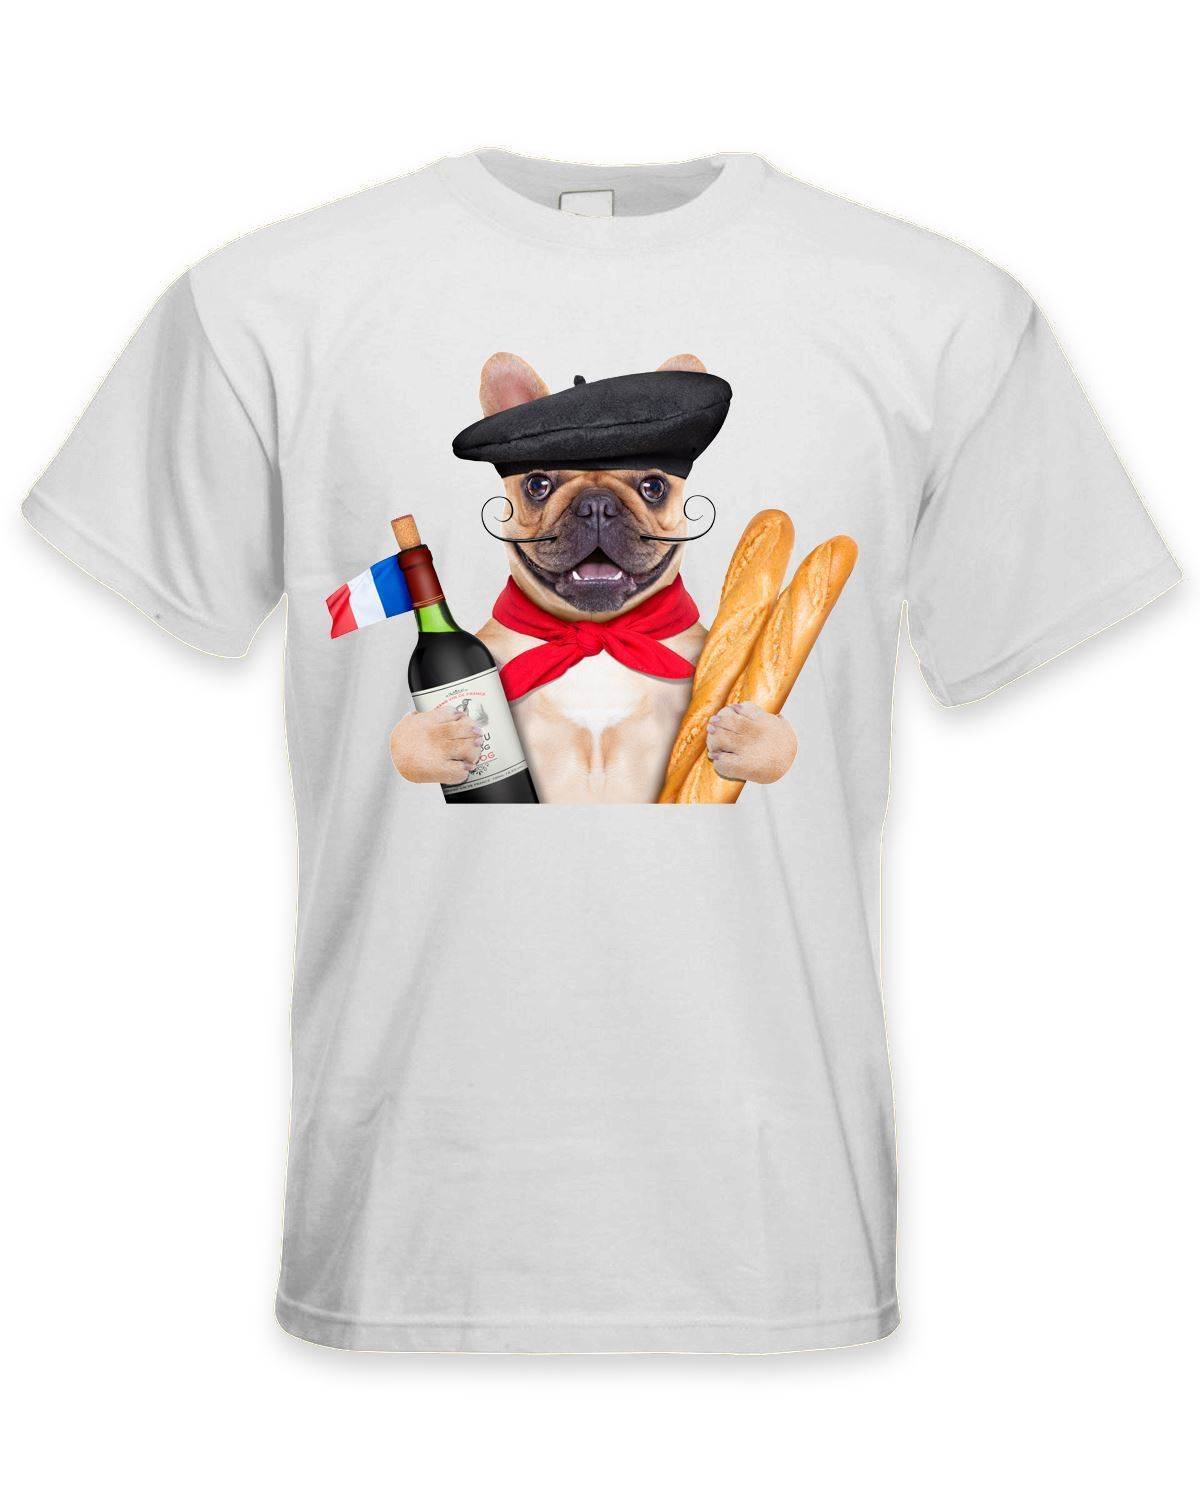 French Bulldog With Wine and Baguette Mens T-Shirt - Funny Pet Bull Dog